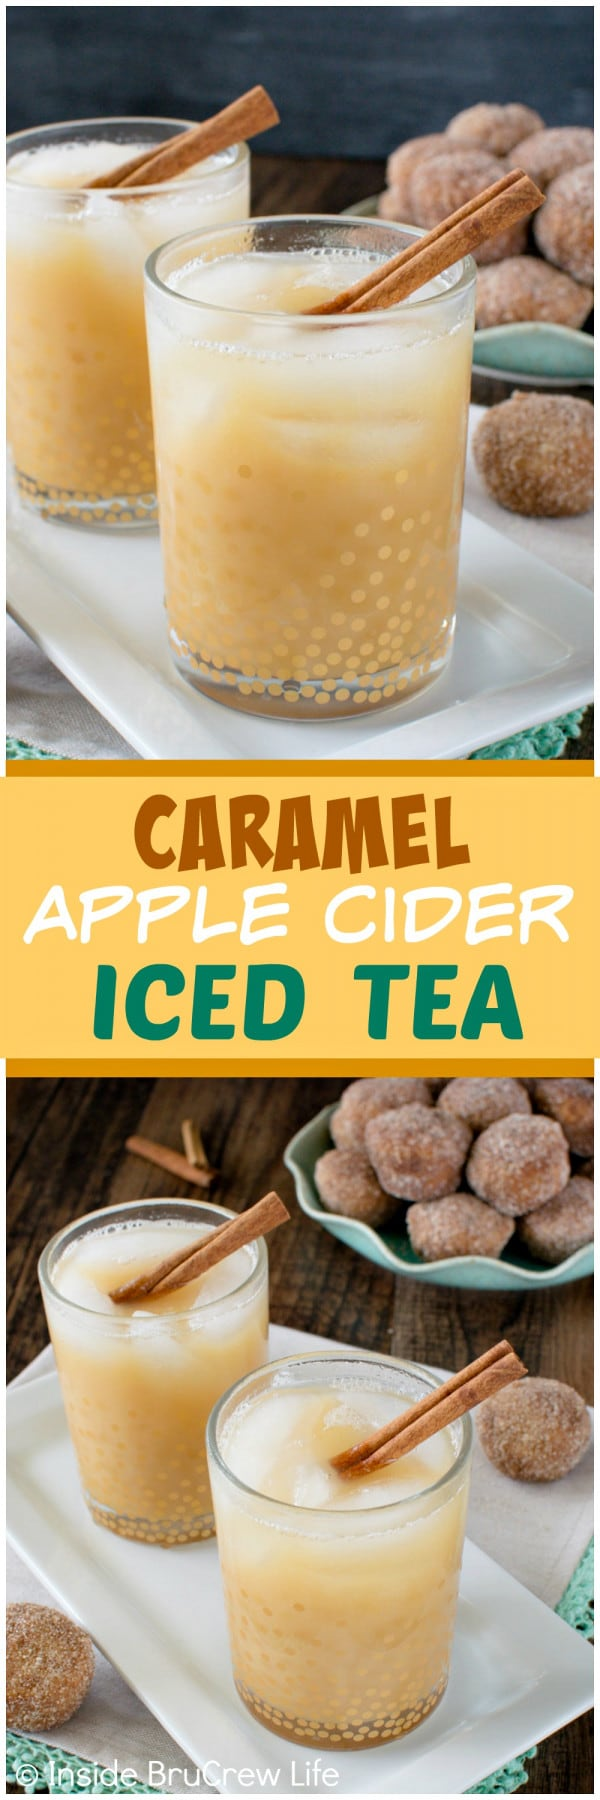 Caramel Apple Cider Iced Tea - this easy and refreshing drink is the perfect blend of flavors for enjoying on a fall day. Great recipe combo.